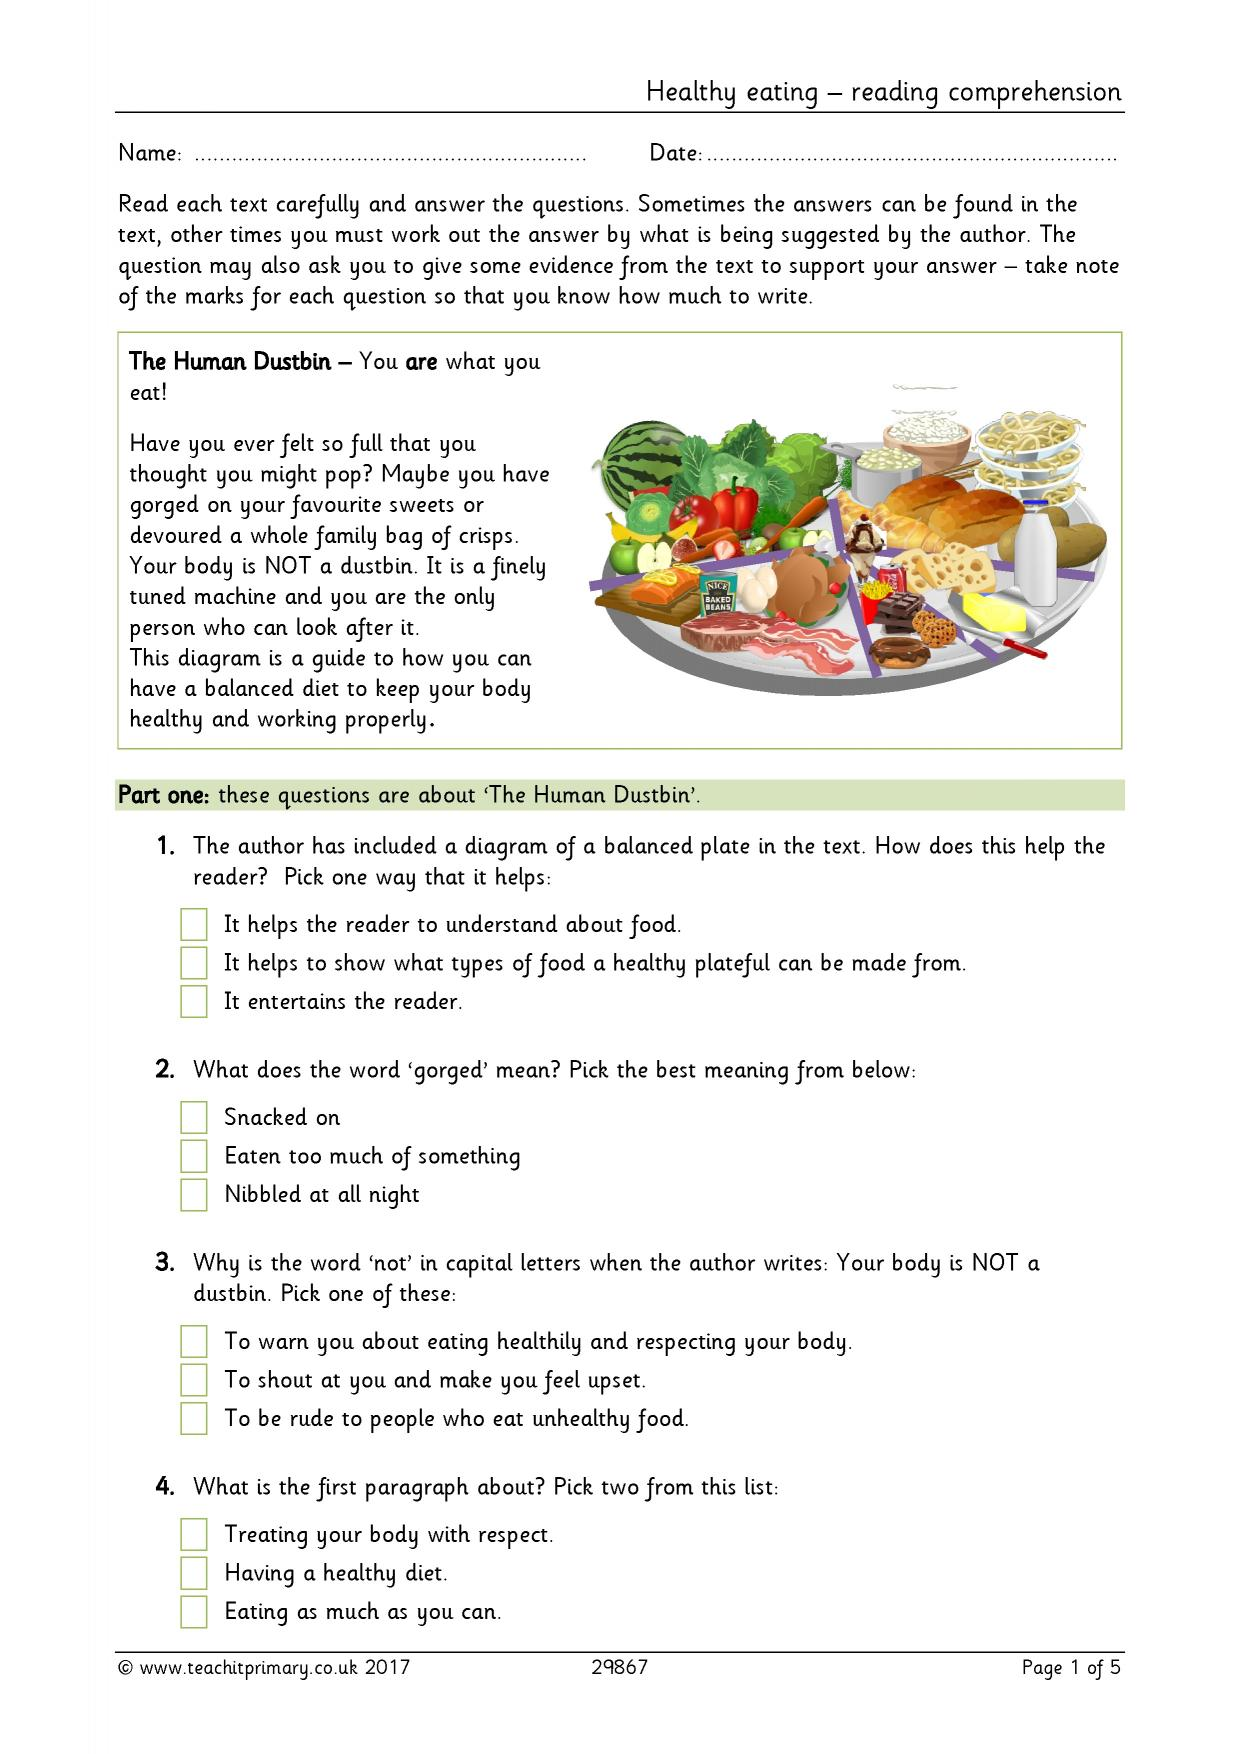 hight resolution of Healthy eating - reading comprehension   Food   Lifestyle   Health   KS2    PDF